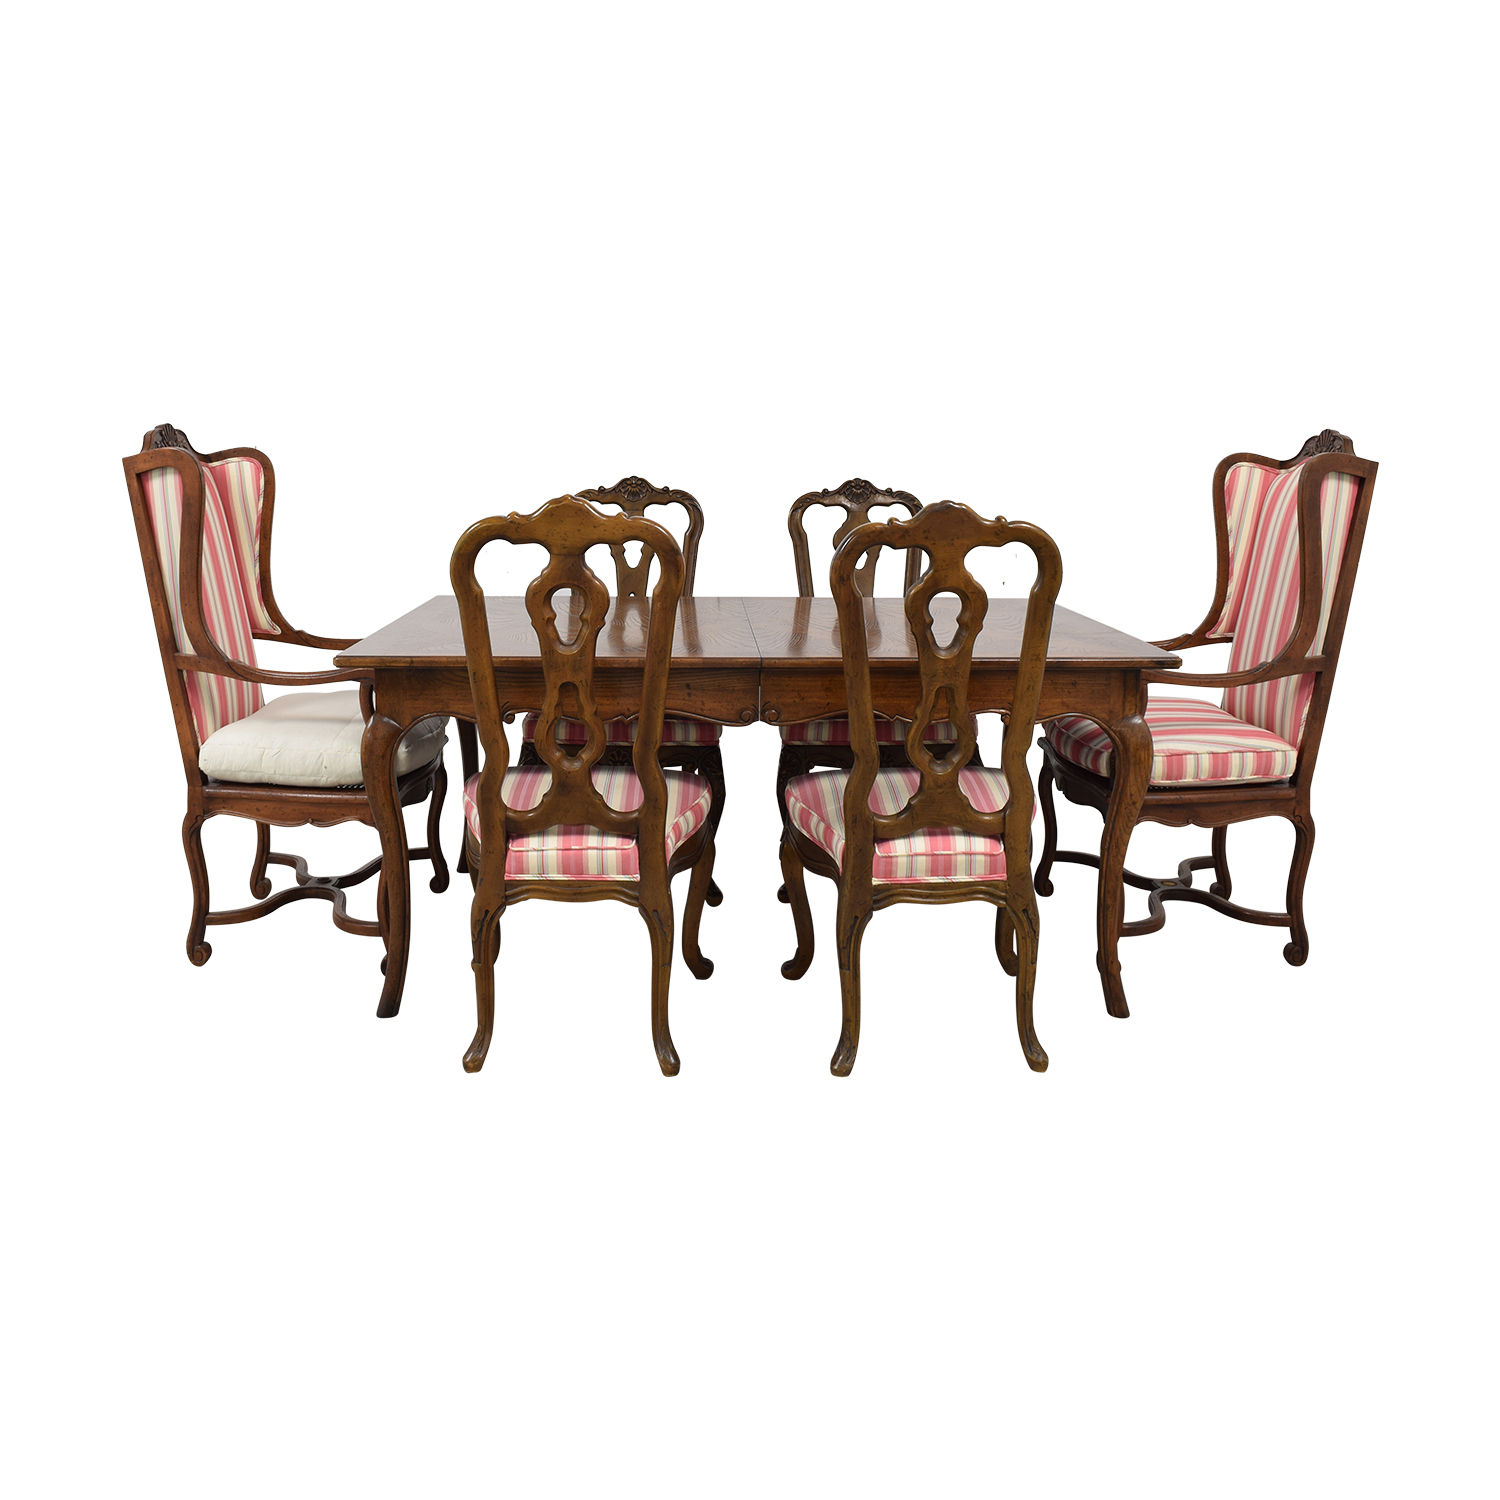 shop Hekman Furniture Hekman Furniture Upholstered Dining Set online